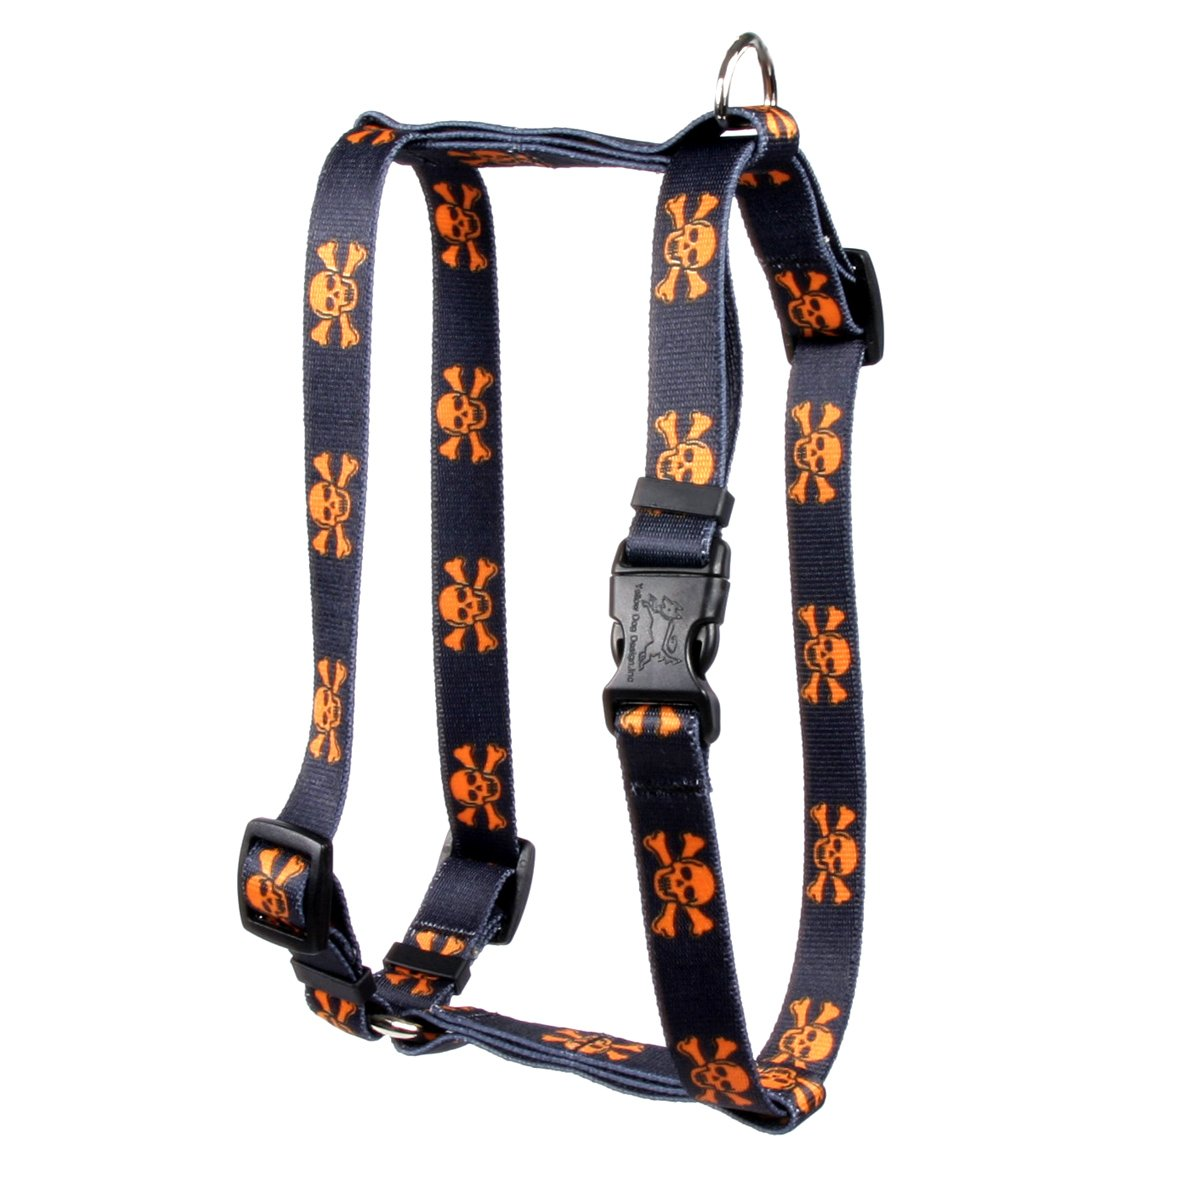 Yellow Dog Design Orange Black Skulls Roman Style H Dog Harness, X-Large-1'' Wide fits Chest of 28 to 36'' by Yellow Dog Design